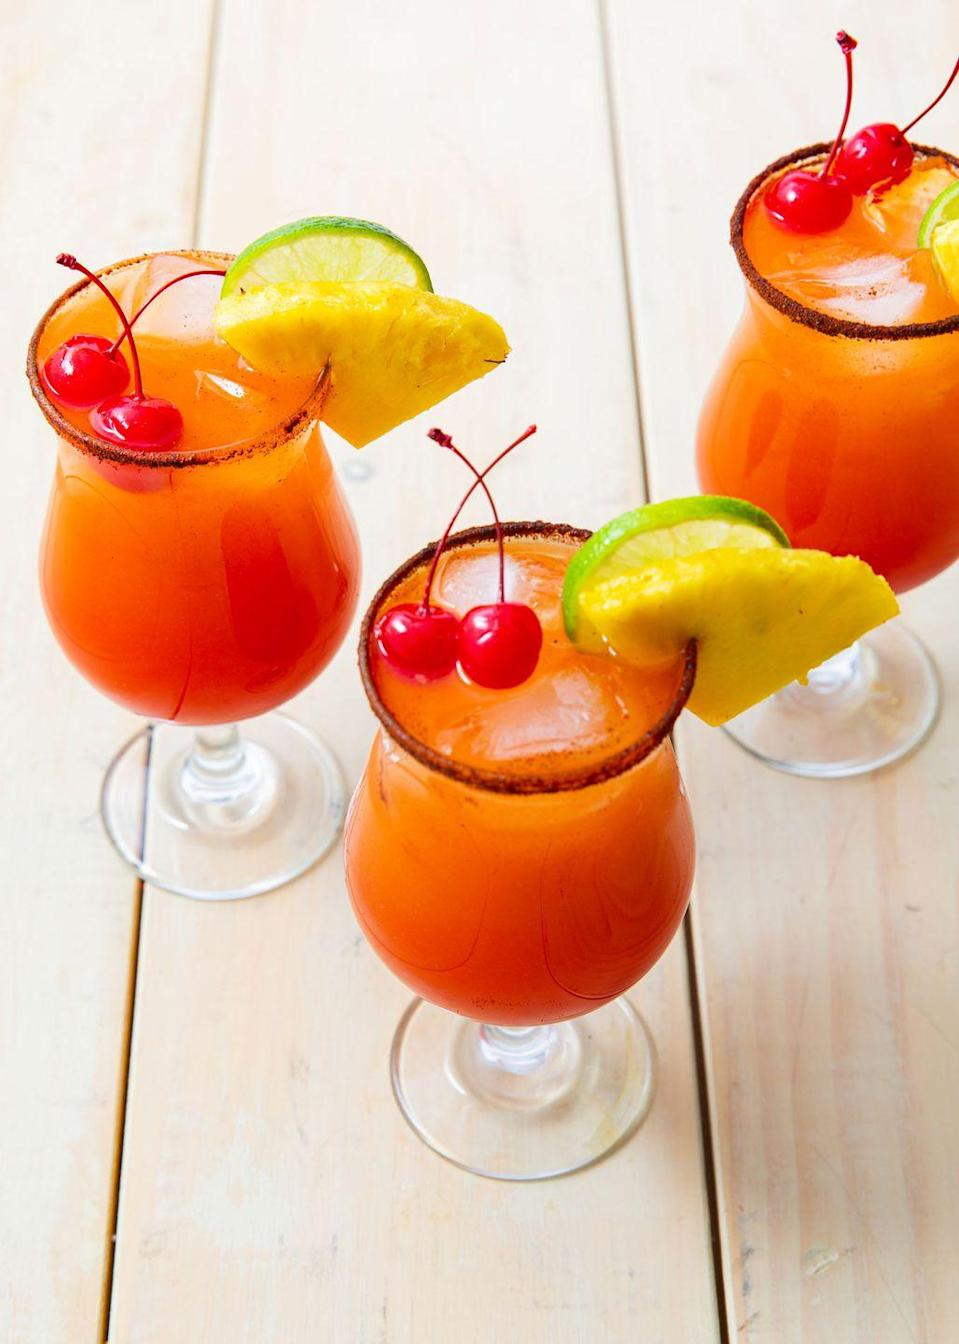 """<p>It's like a tropical vacation in a glass.</p><p>Get the recipe from <a href=""""https://www.delish.com/cooking/recipe-ideas/a30195779/mai-tai-recipe/"""" rel=""""nofollow noopener"""" target=""""_blank"""" data-ylk=""""slk:Delish"""" class=""""link rapid-noclick-resp"""">Delish</a>.</p>"""